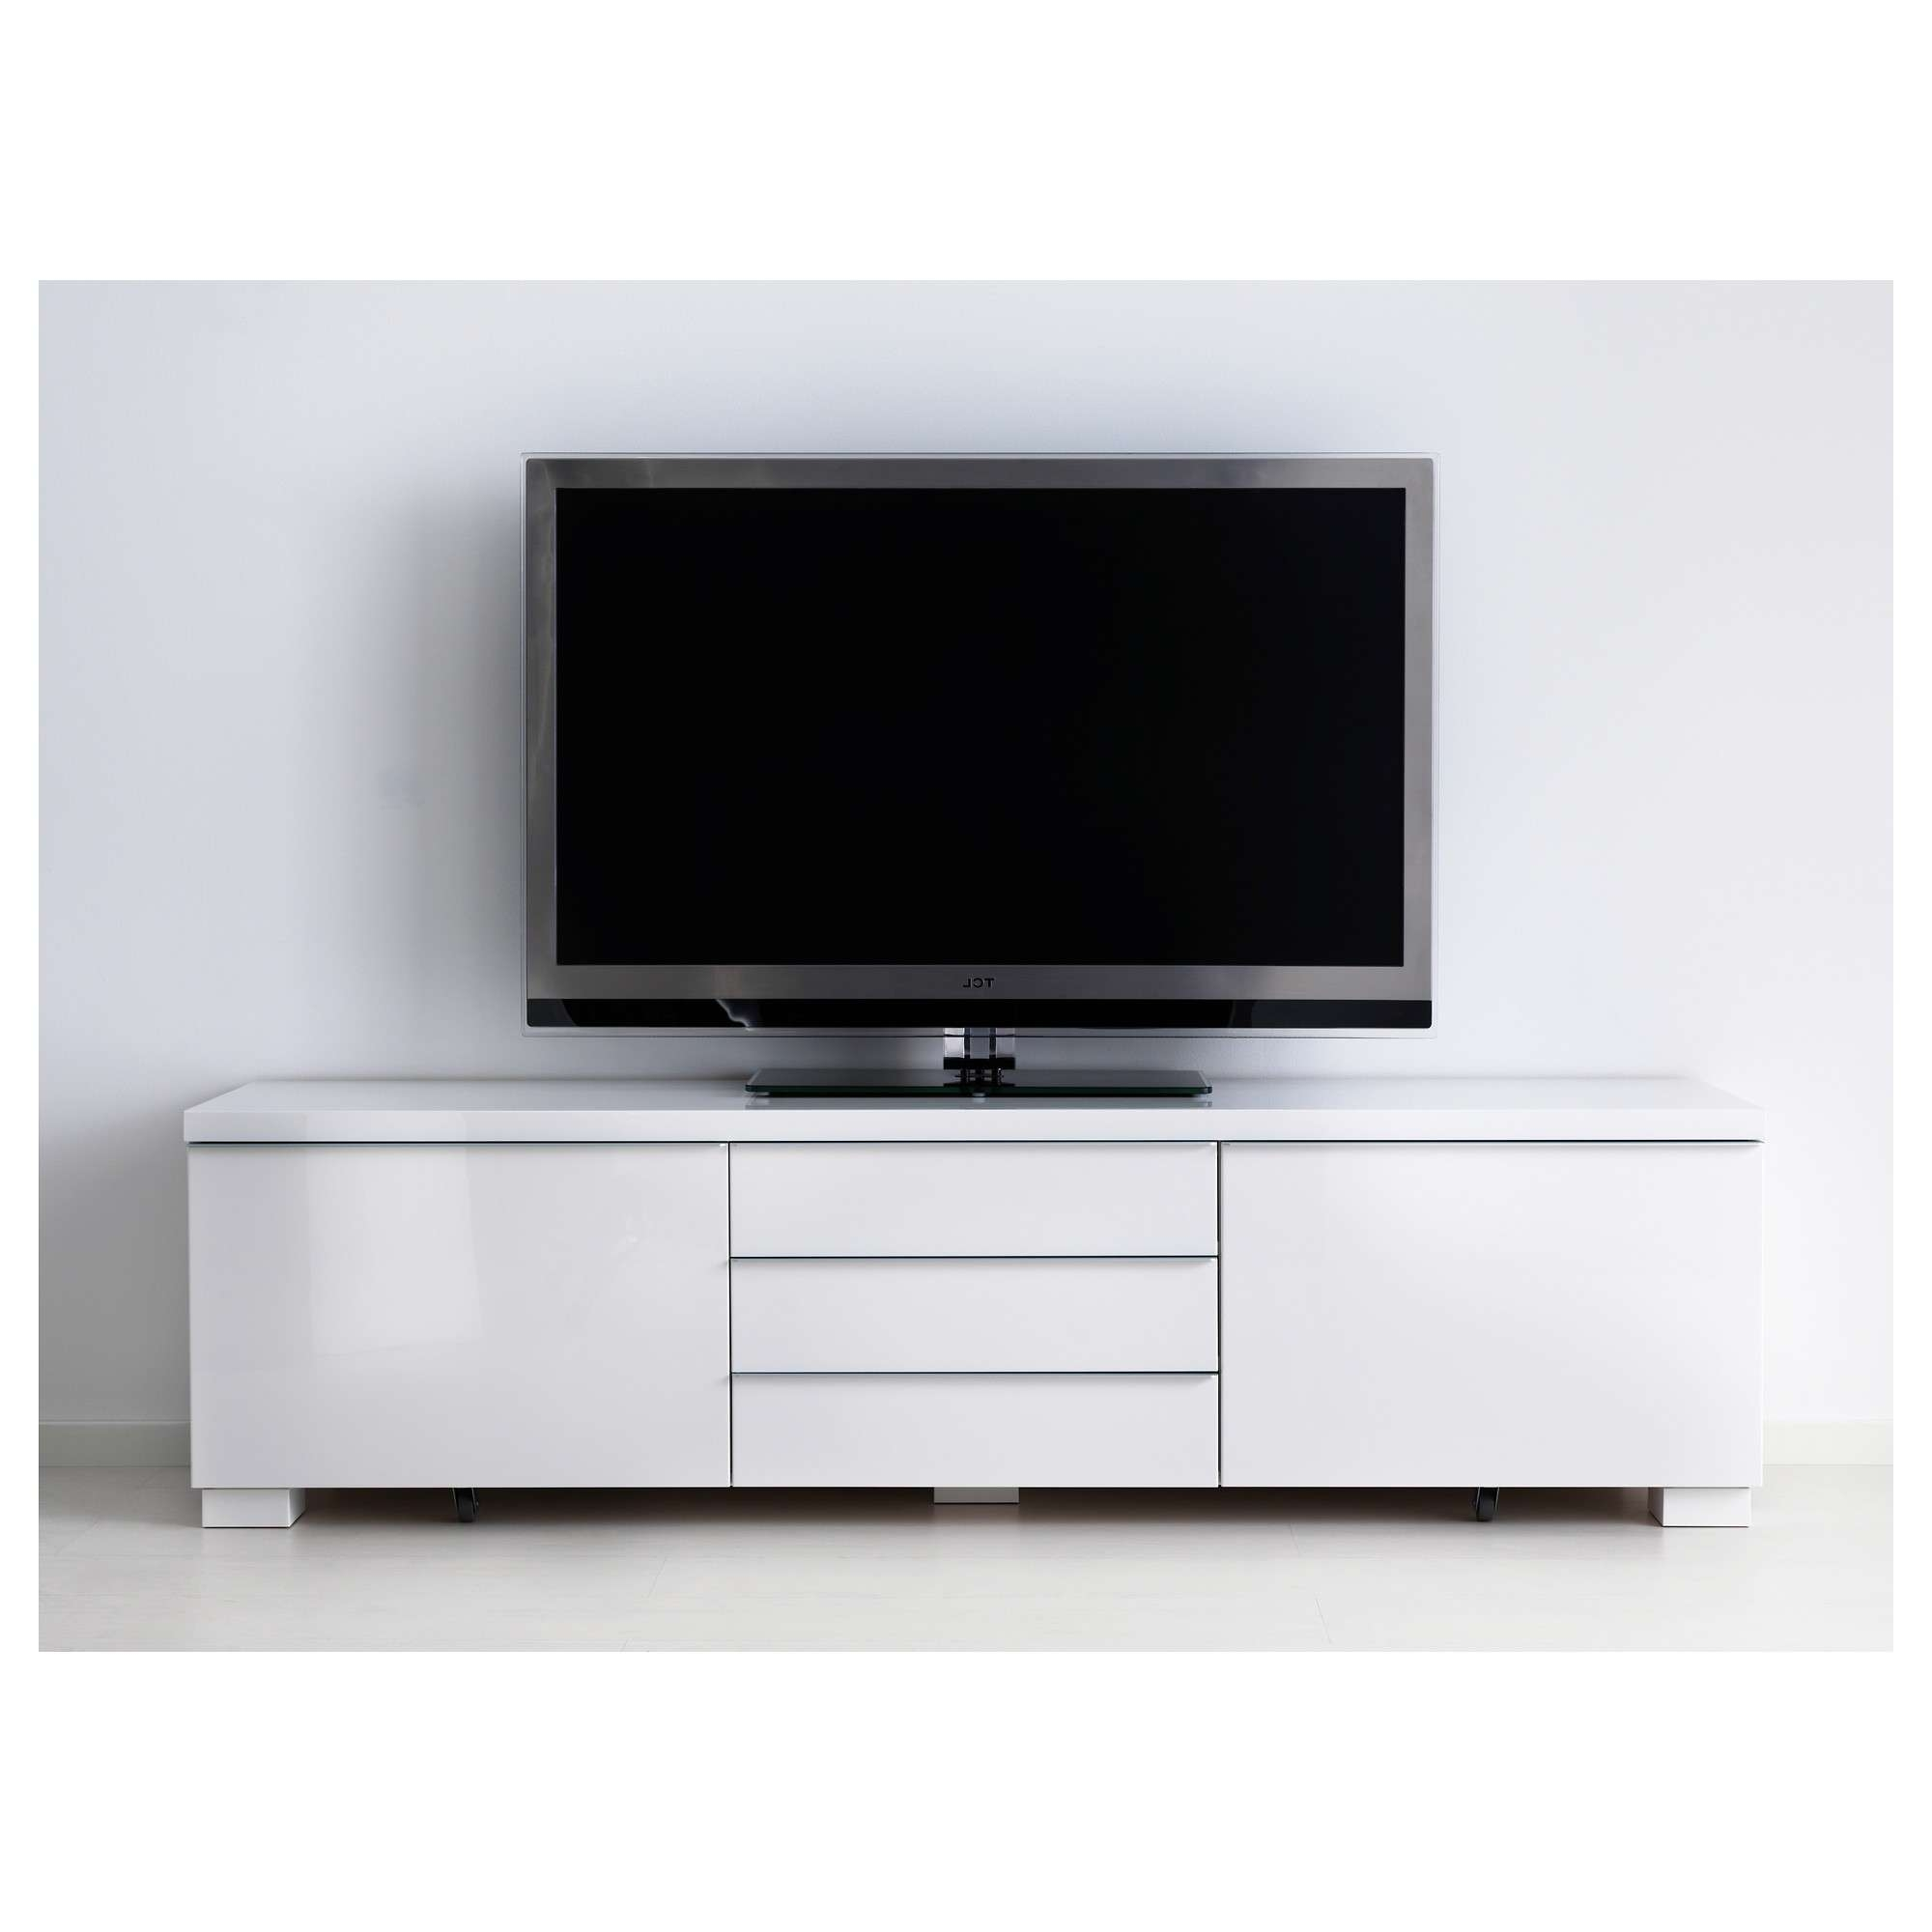 Pop Up Tv Cabinet Ikea (View 9 of 15)